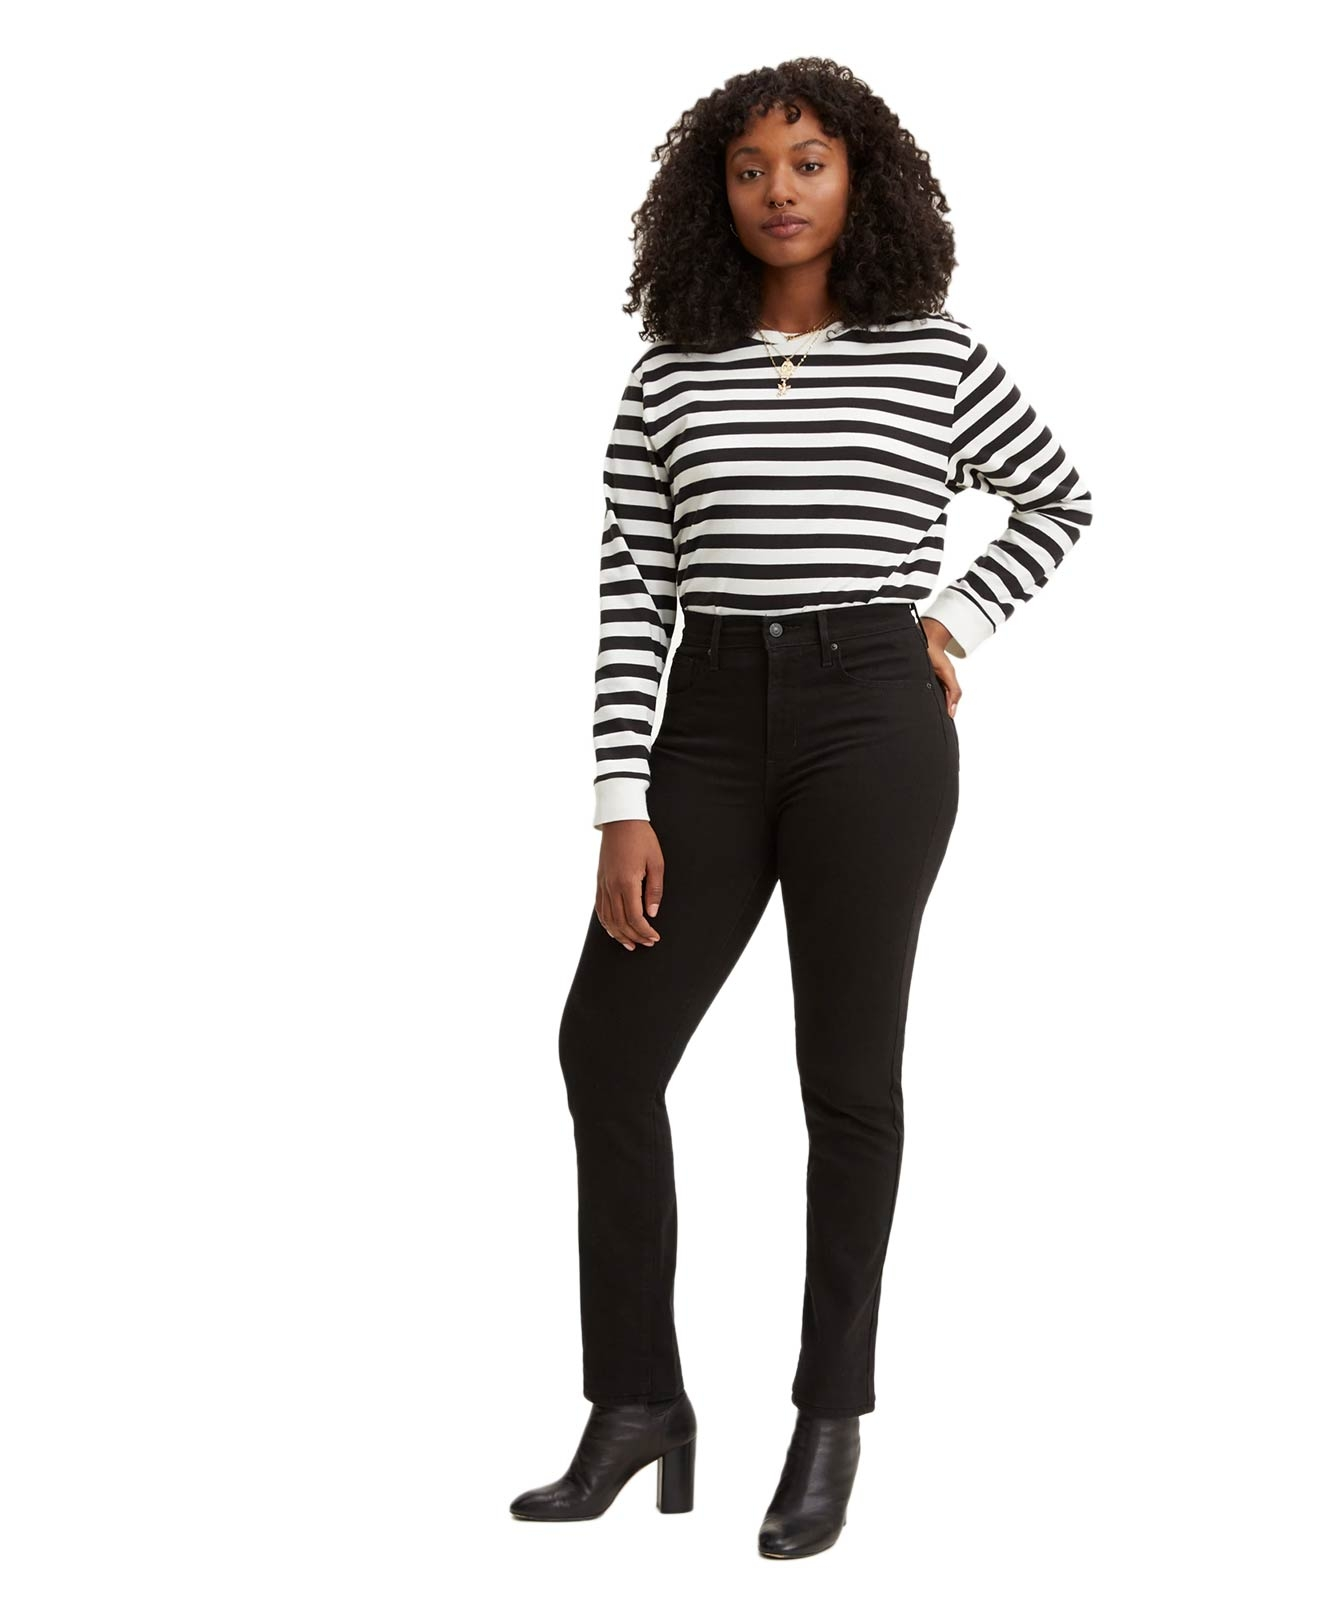 Hosen - Levis High Waisted Jeans 724 in Black Sheep  - Onlineshop Jeans Meile